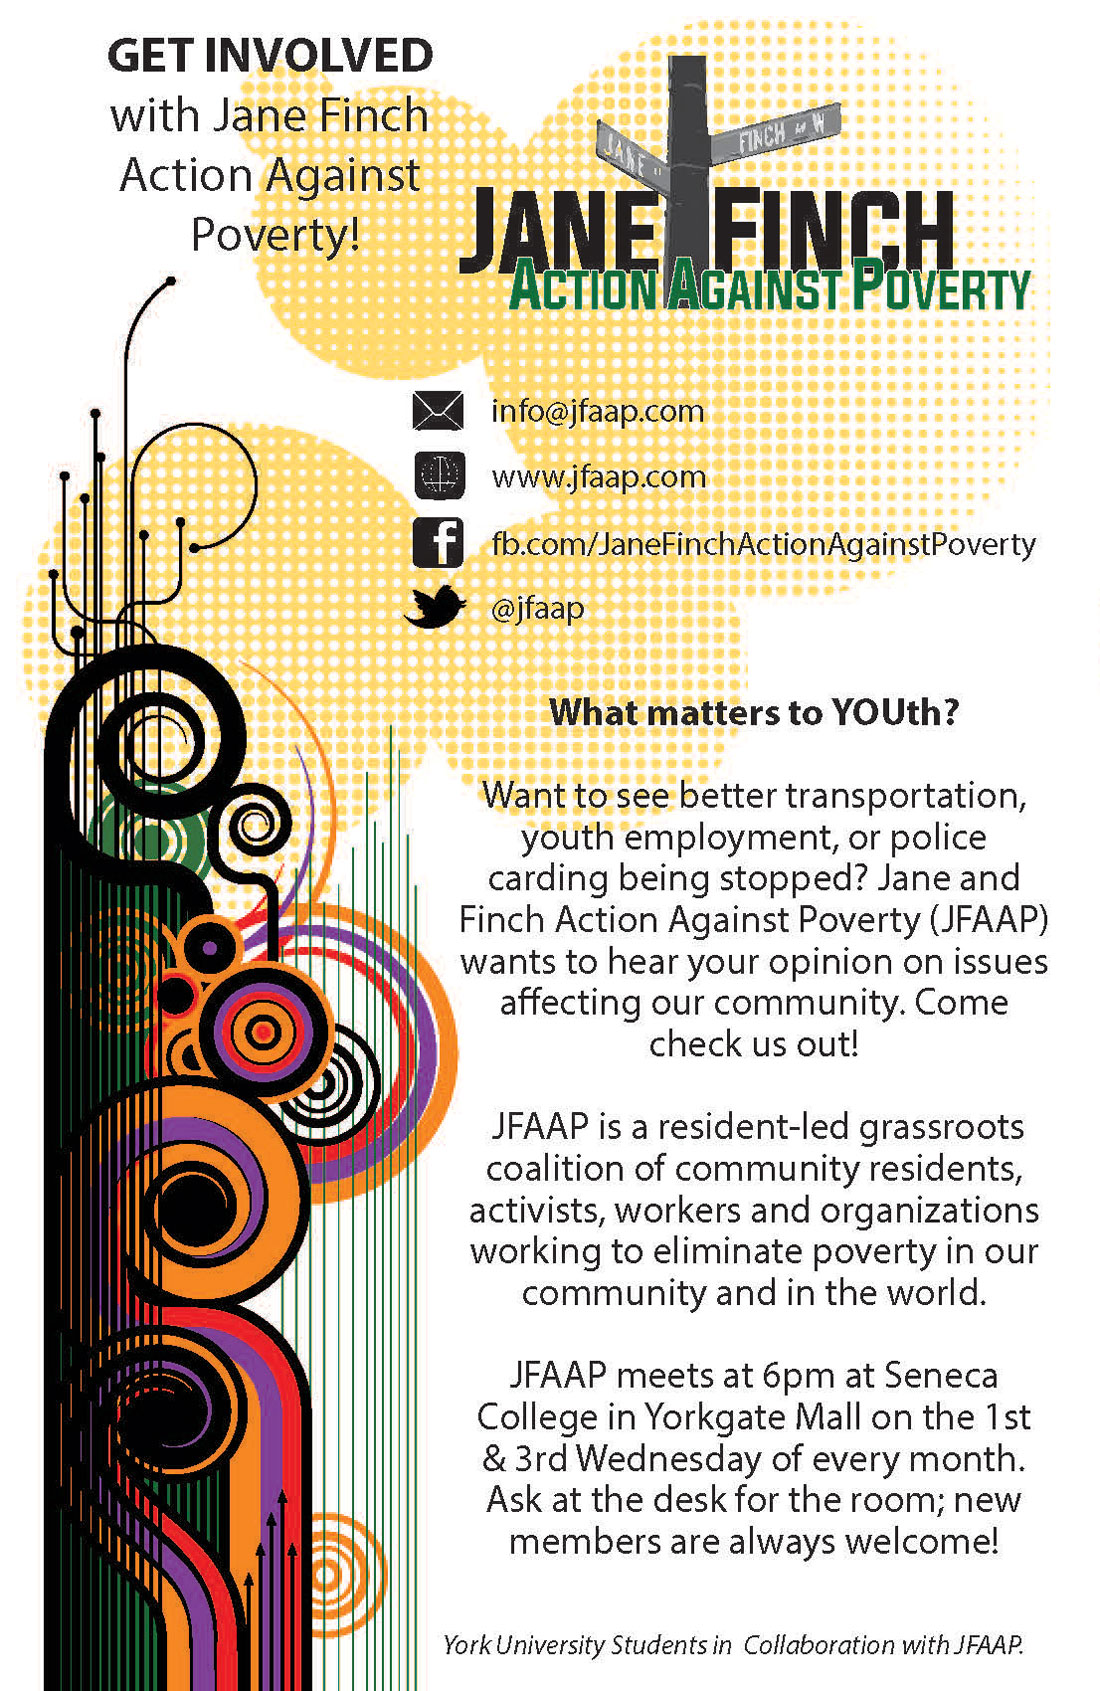 What Matters to Youth Flyer: Jane and Finch Action Against Poverty (JFAAP)